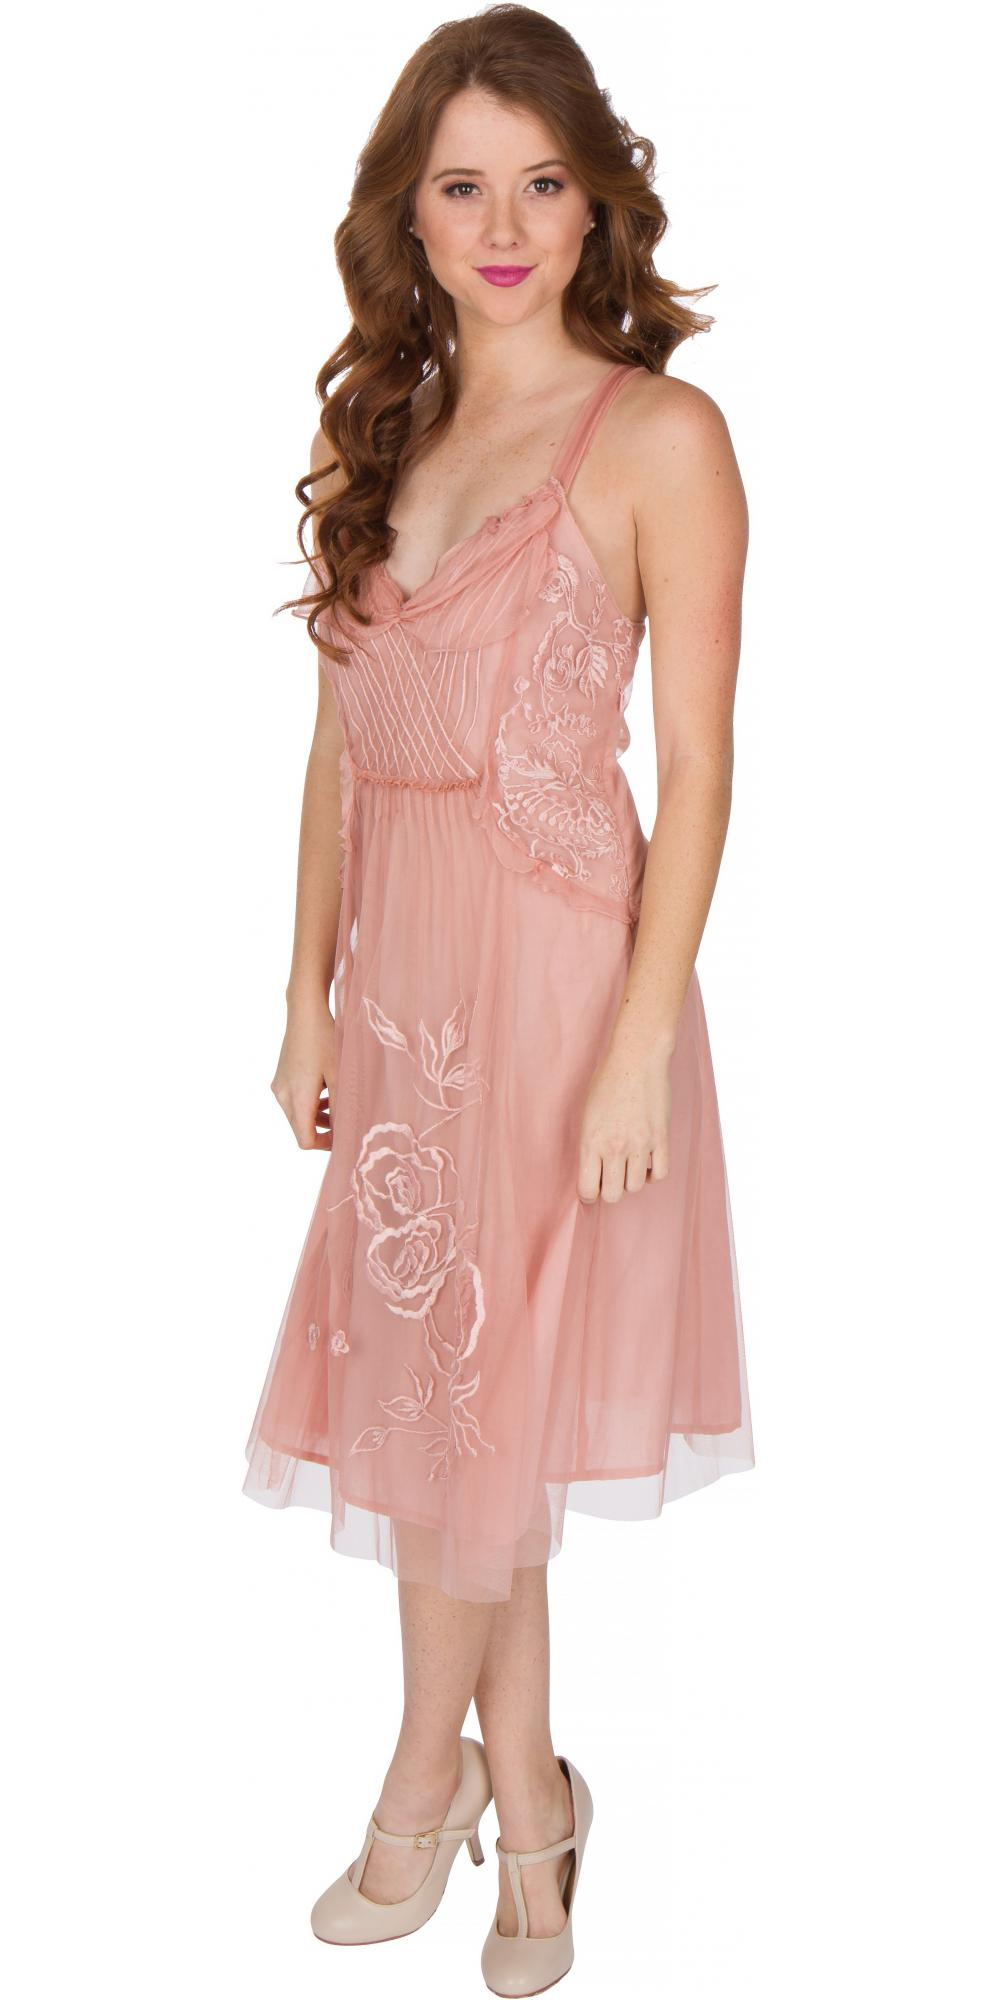 Age of Love Nataya AL-216 Party Dress in Soft Pink